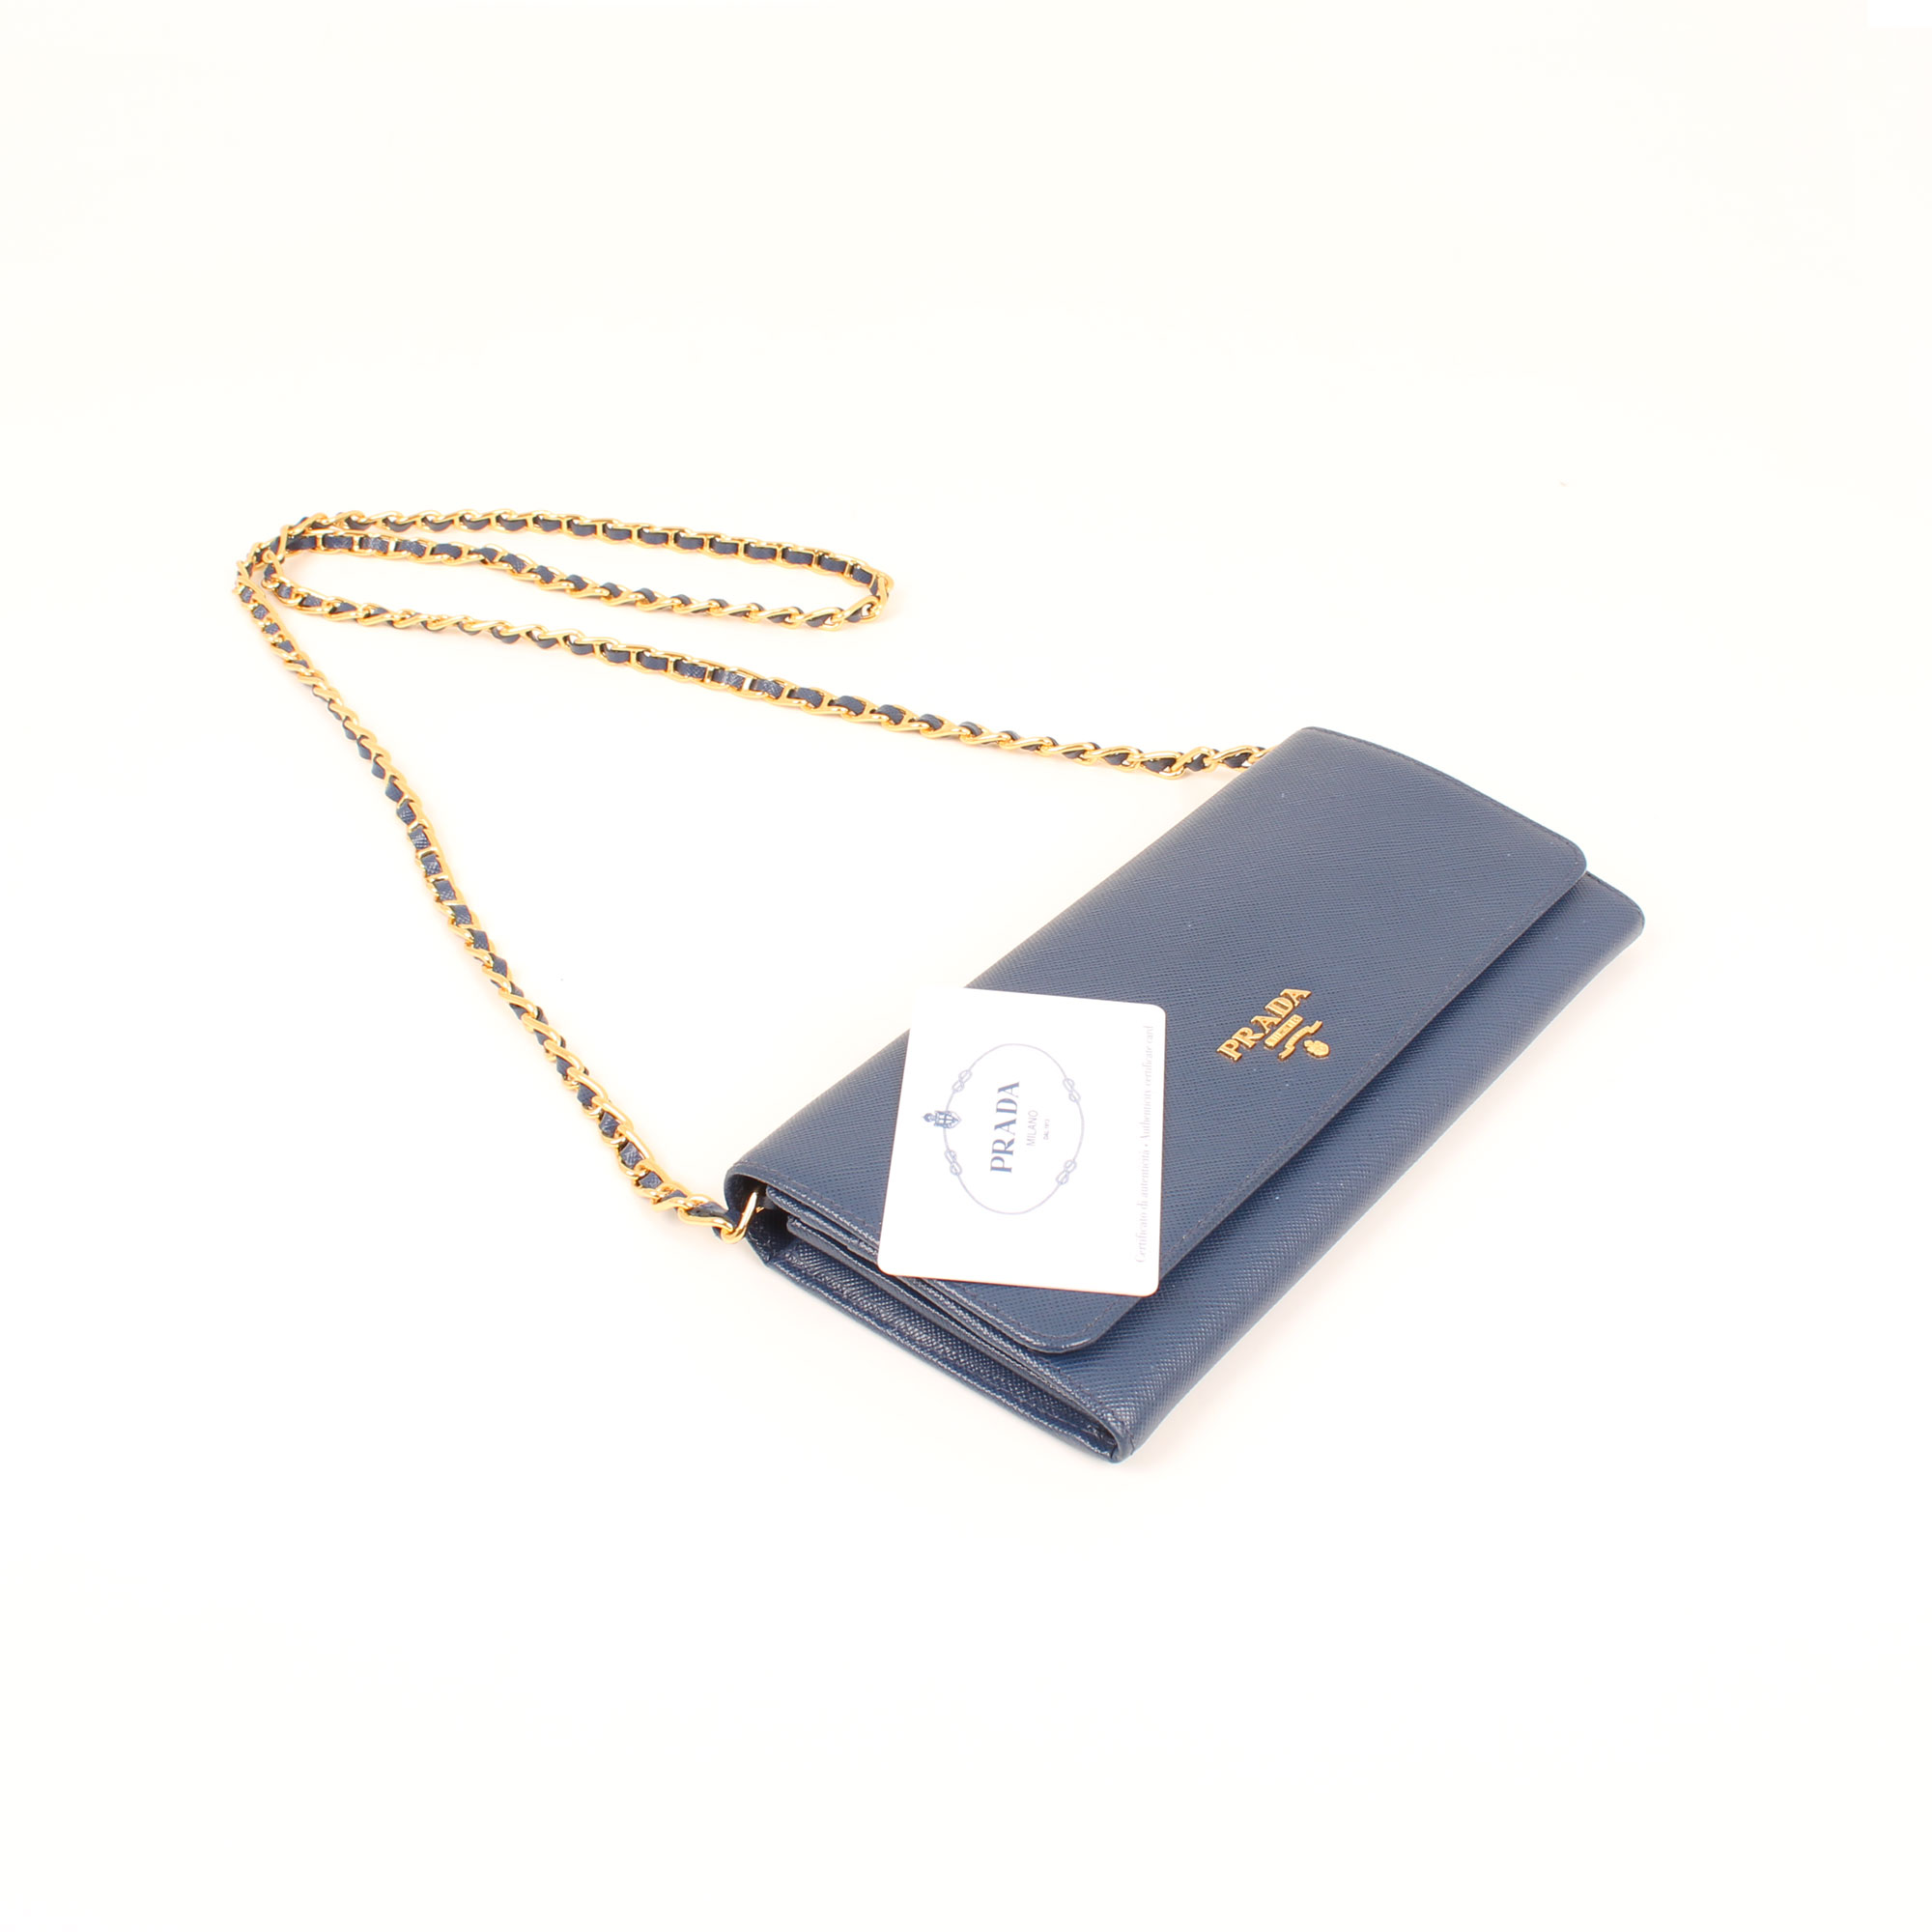 bolso-prada-wallet-on-chain-saffiano-metal-bluette-azul-tarjeta